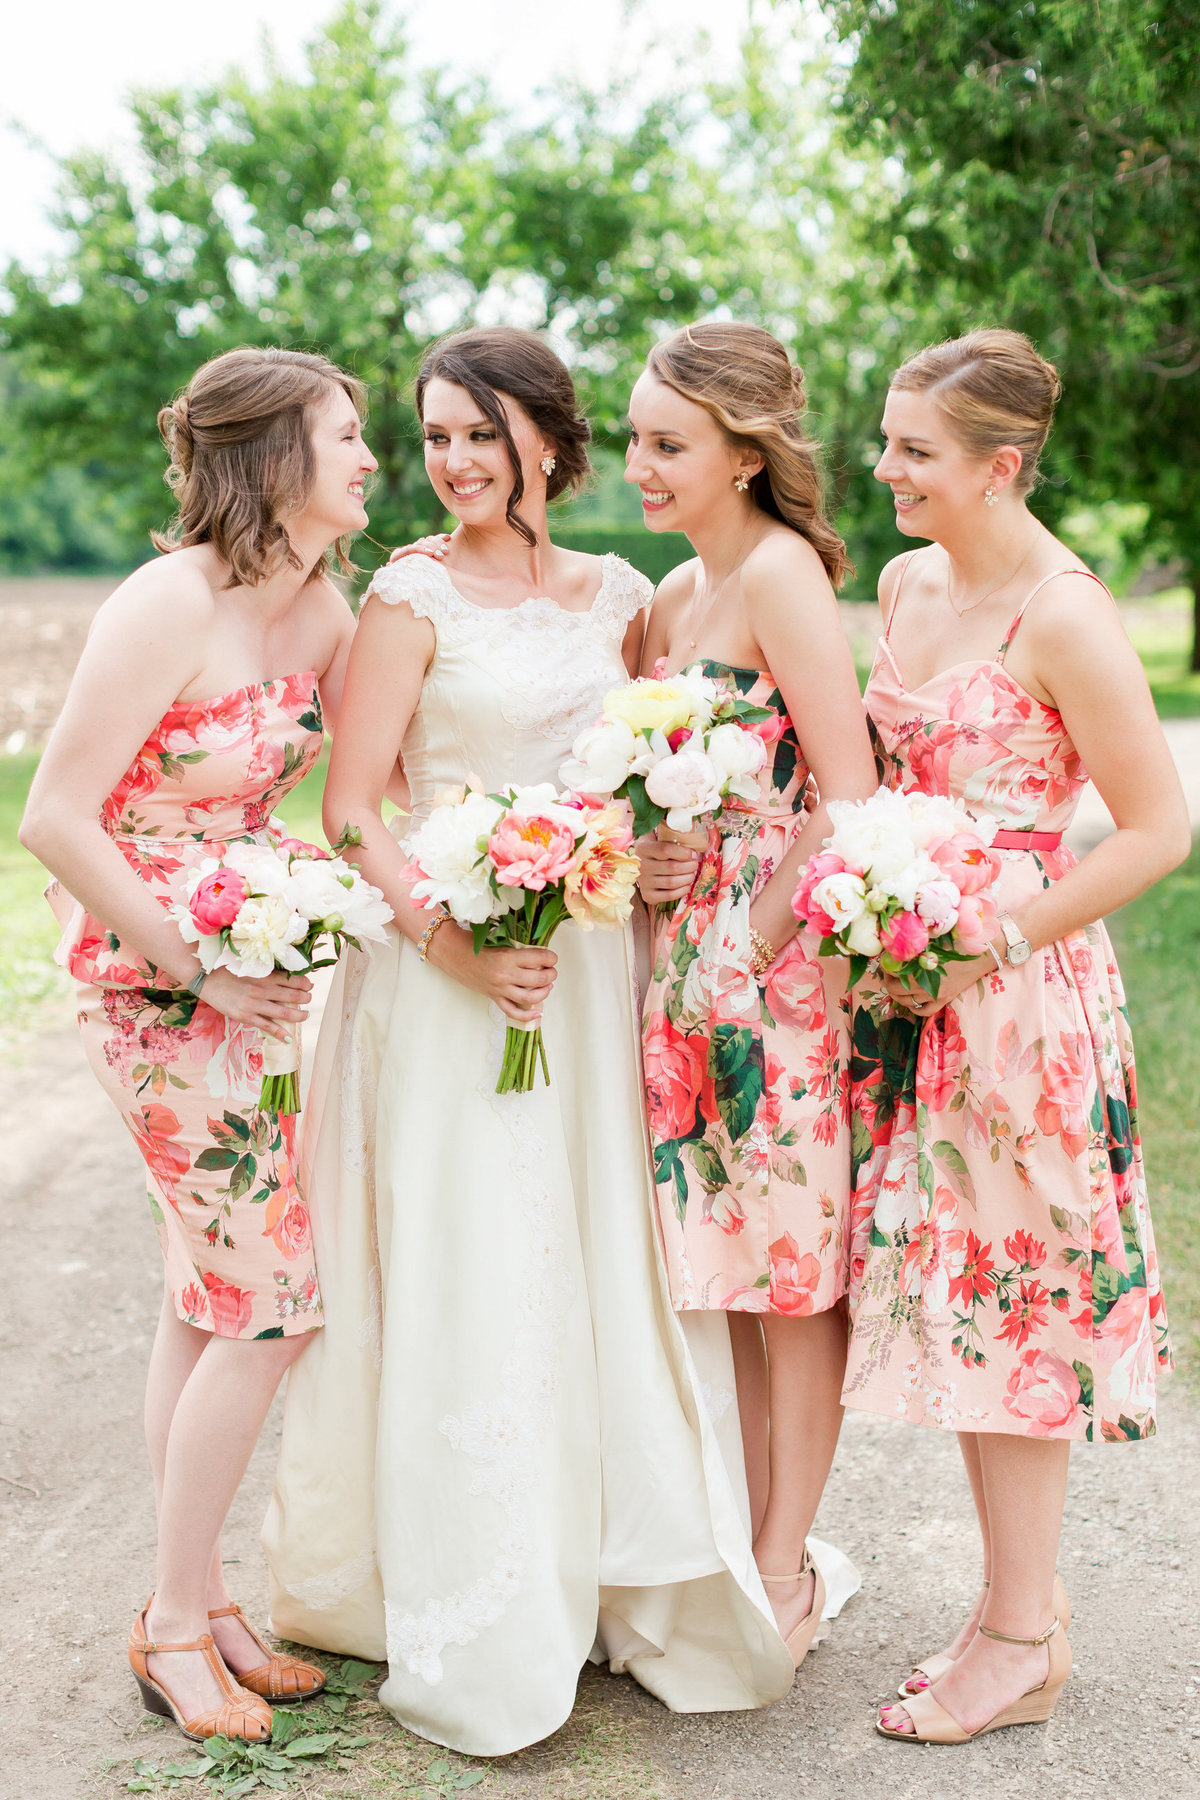 Maison Meredith Photography Wisconsin Wedding Photographer Real Wedding Four 040